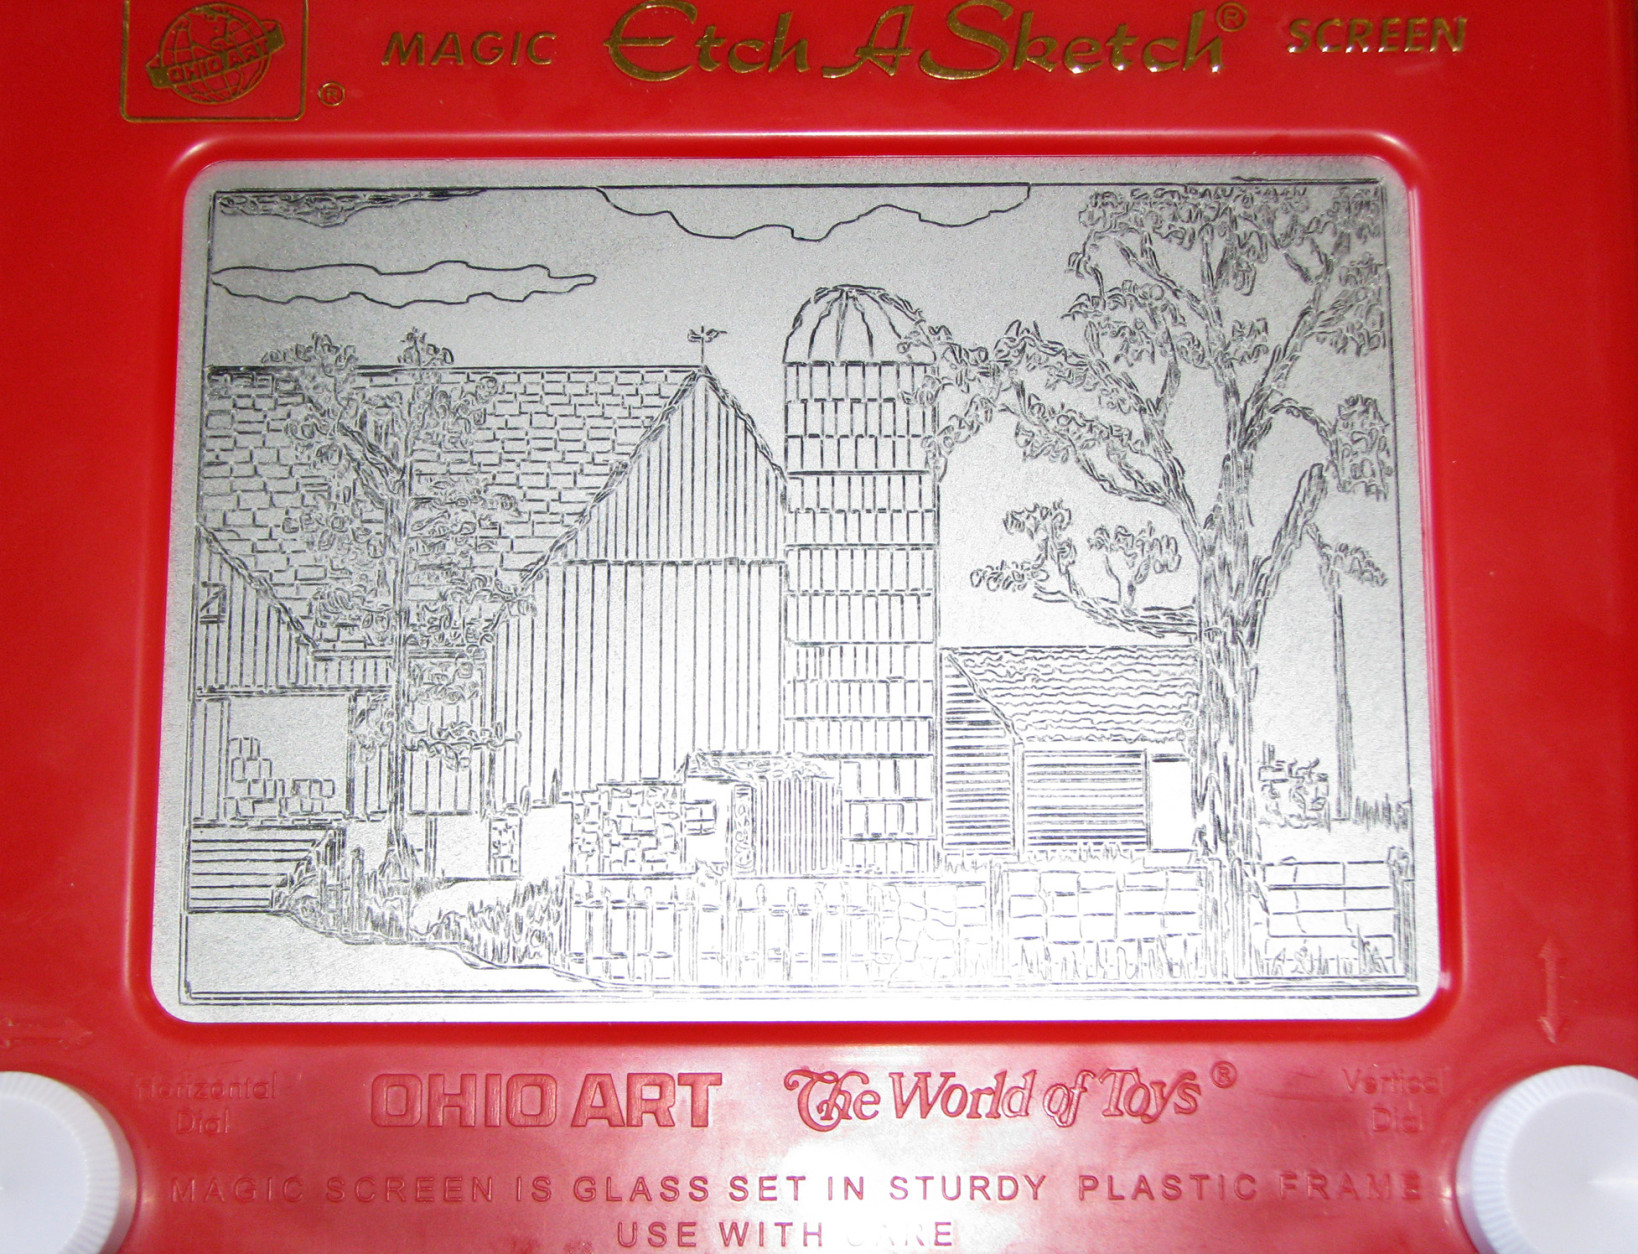 FILE - In this June 26, 2008 file photo, an Etch-A-Sketch drawing made by artist Andy Kingston depicts a rural farm scene in Poplar Bluff, Mo. Ohio Art Co. sold the Etch A Sketch and the spinoff Doodle Sketch to Spin Master Corp. for an undisclosed price to a toy firm in Toronto. Ohio Art announced the surprise move Thursday, Feb. 11, 2016. (Margaret Harwell/The Daily American Republic via AP) MANDATORY CREDIT